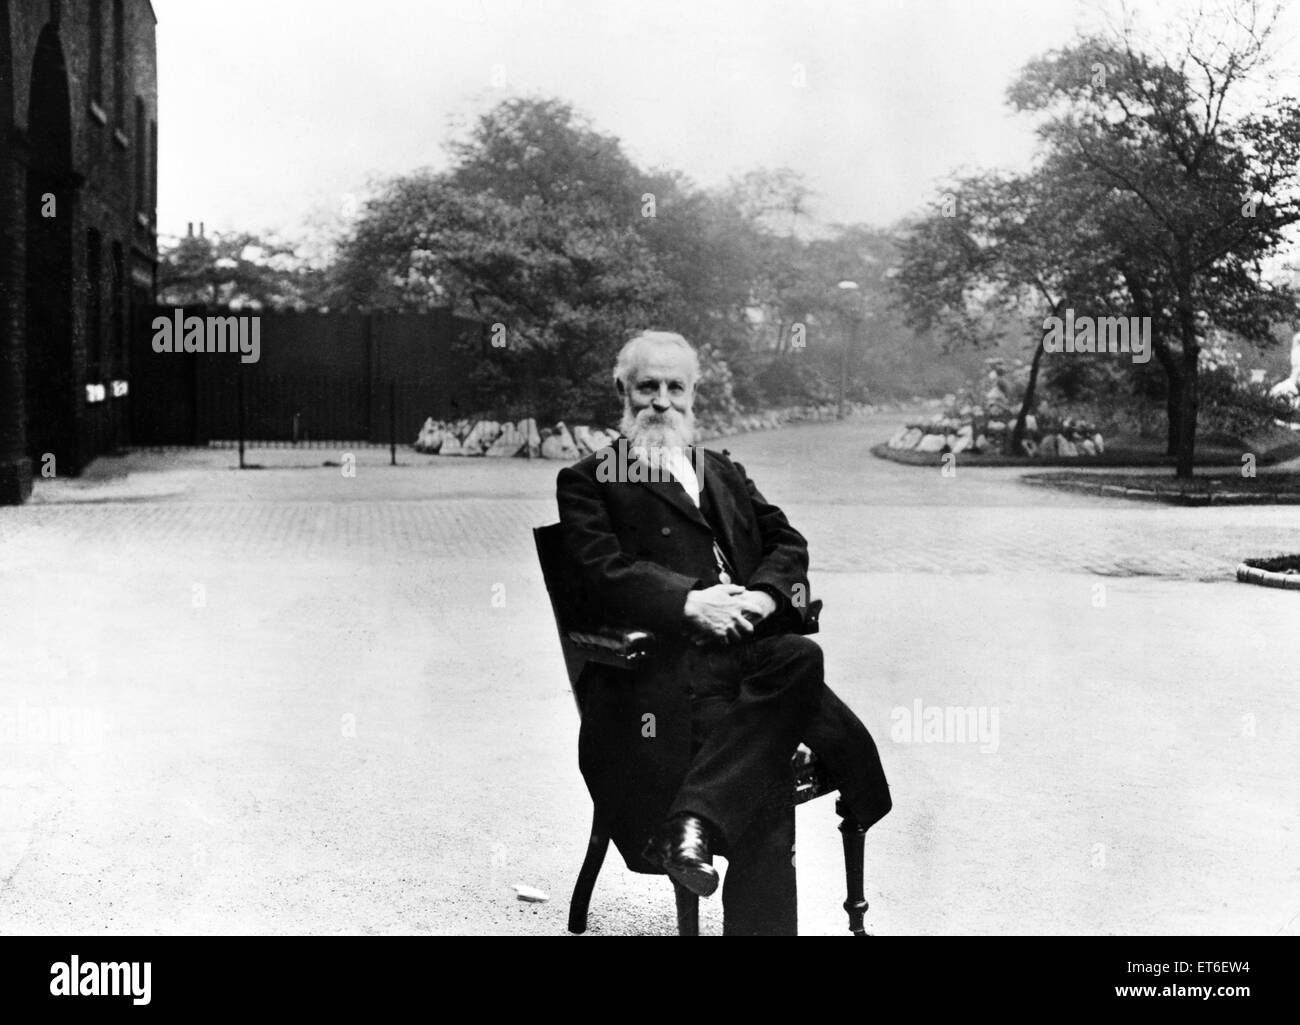 Richard Jennison, son of Belle Vue founder 'Old John'  pictured in Manchester circa 1906. - Stock Image